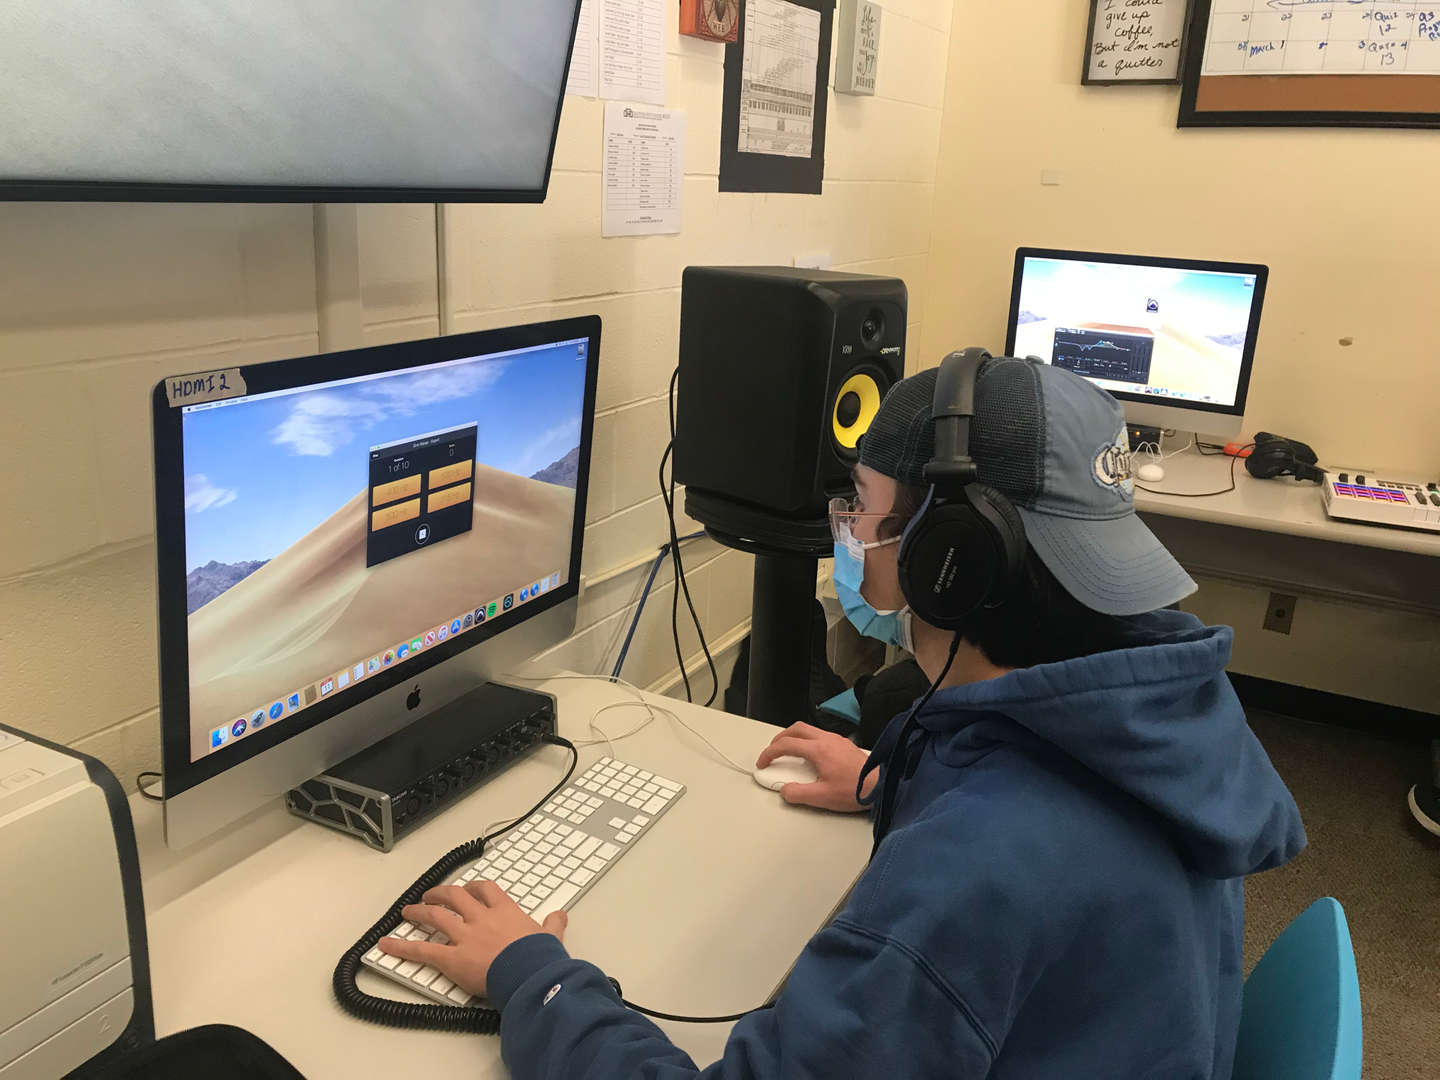 Student uses computer to listen to certain frequencies